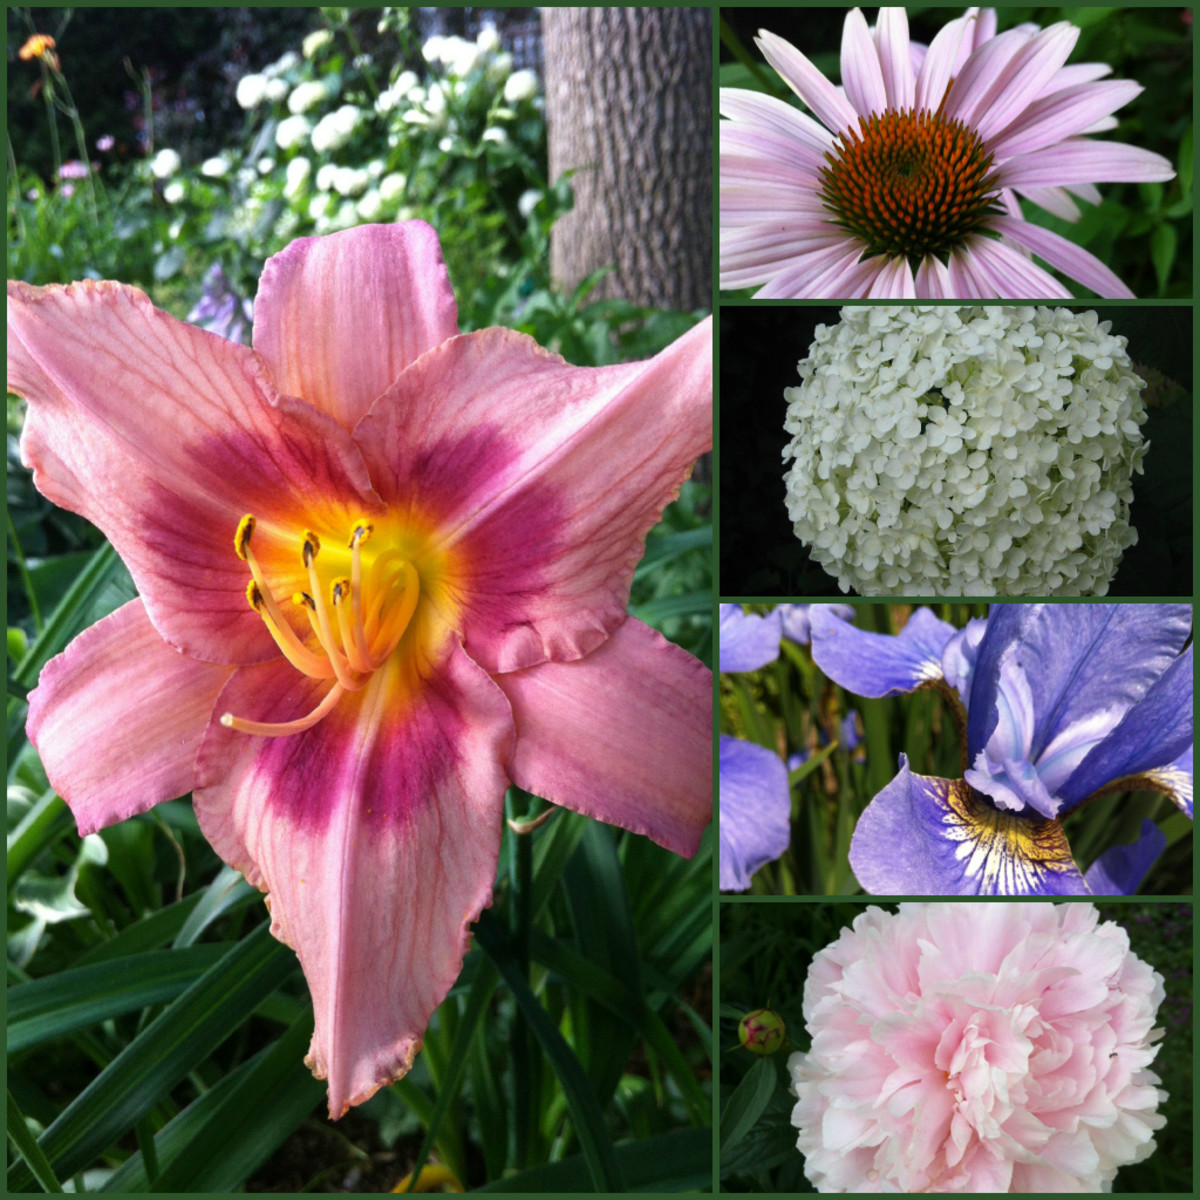 Low maintenance perennials with beautiful flowers include coneflowers, hydrangea, irises, peonies and day lilies..